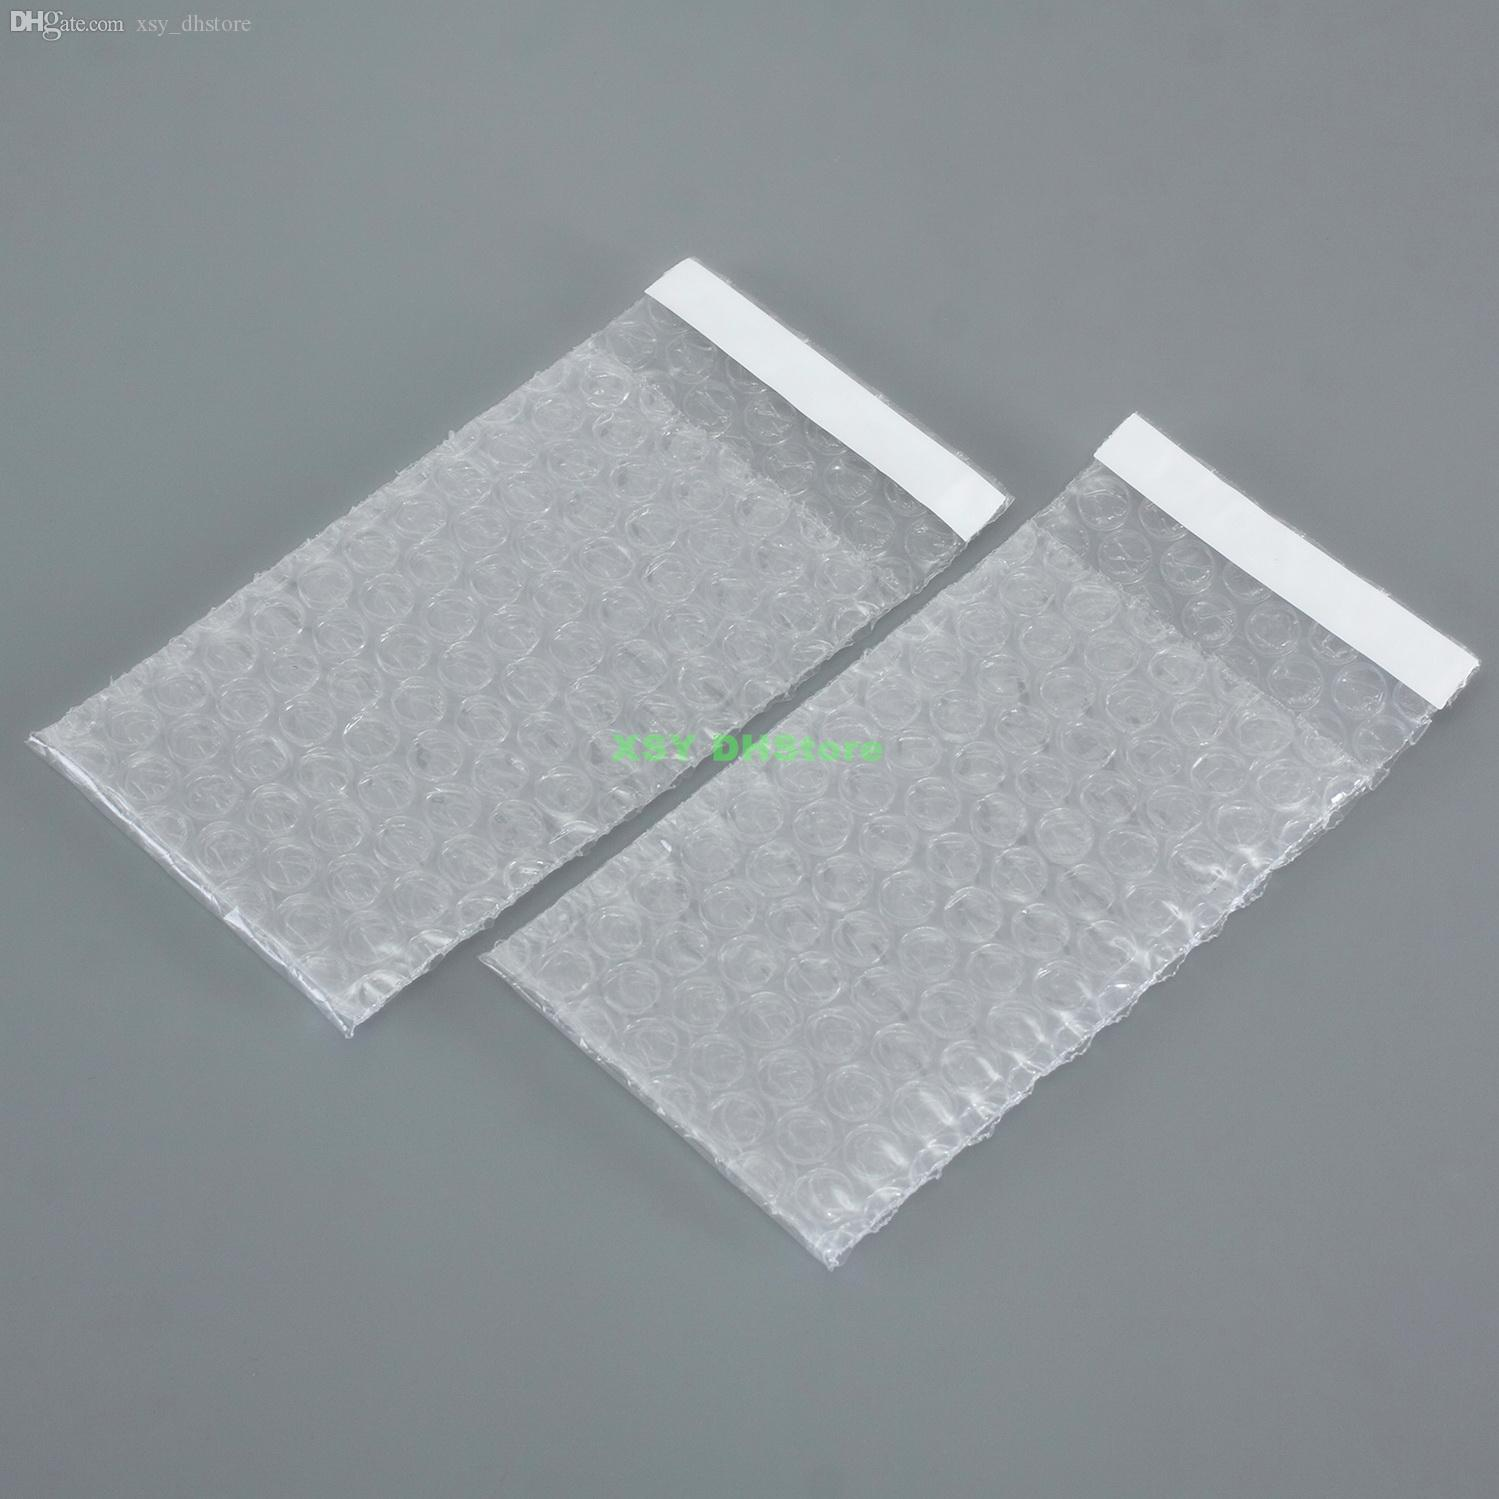 "100 PCS All Sizes Air Bubble Envelopes Wrap Bags Self Sealing Clear Plastic Packing Pouches Width 2.5"" to 6.7"" Length 3"" to 8.7"""